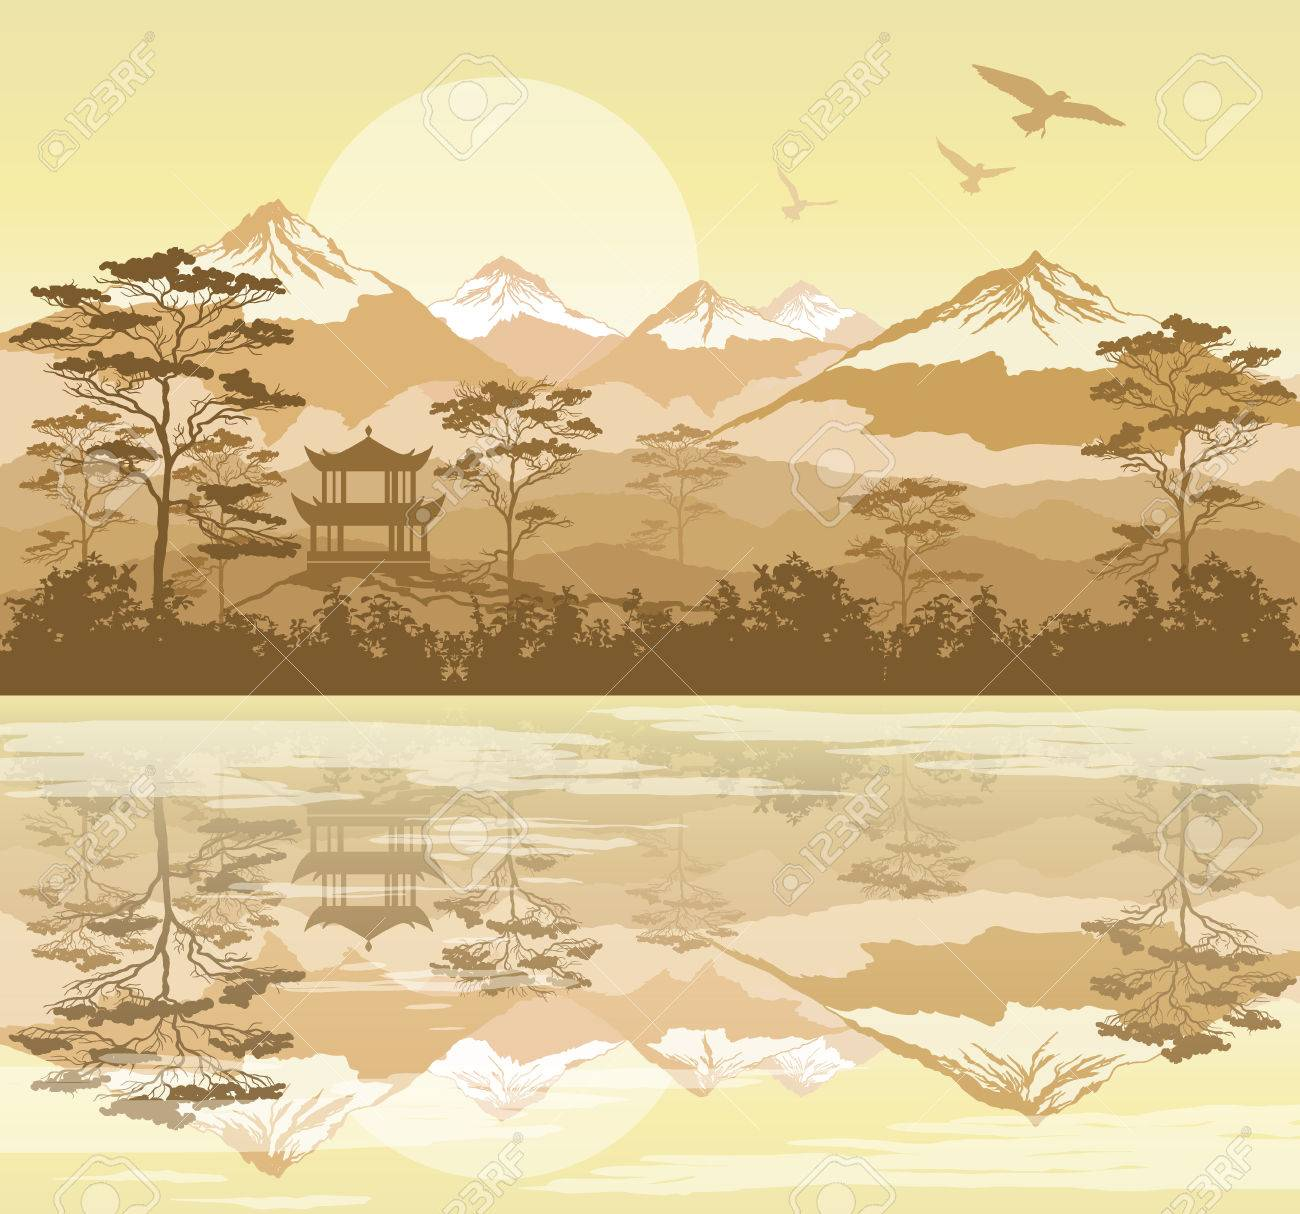 Japanese landscape with forest, lake and mountains - 79567716